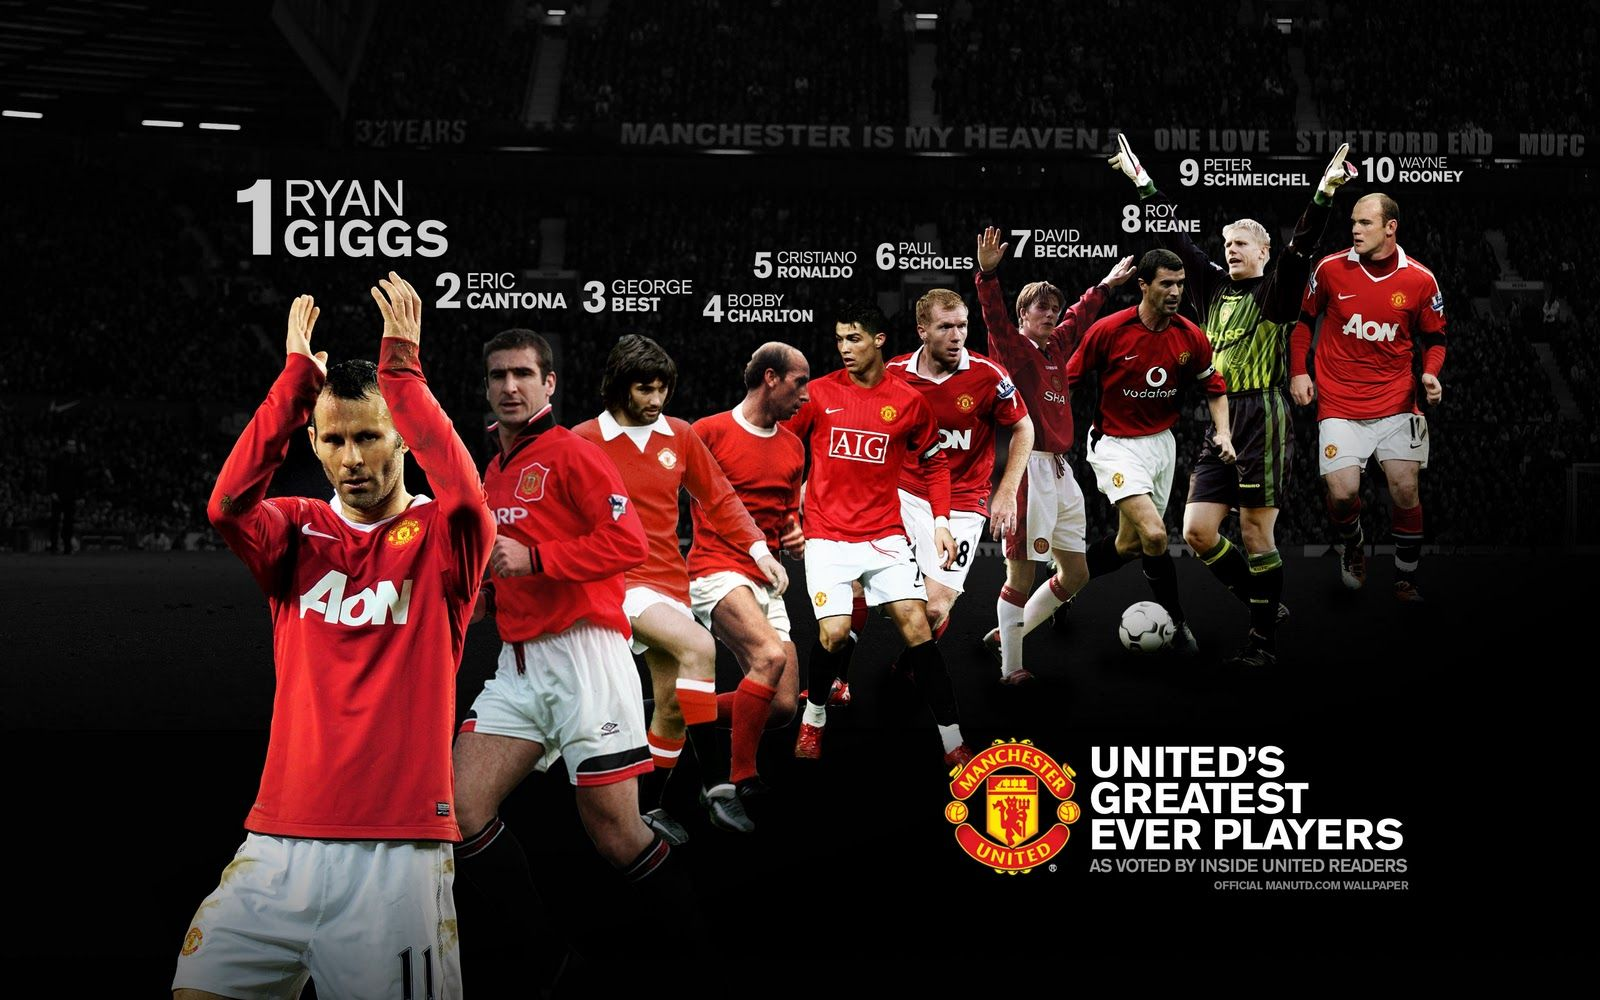 Many Missing Of Course But Not Bad Manchester United Wallpaper Manchester United Players Manchester United Team